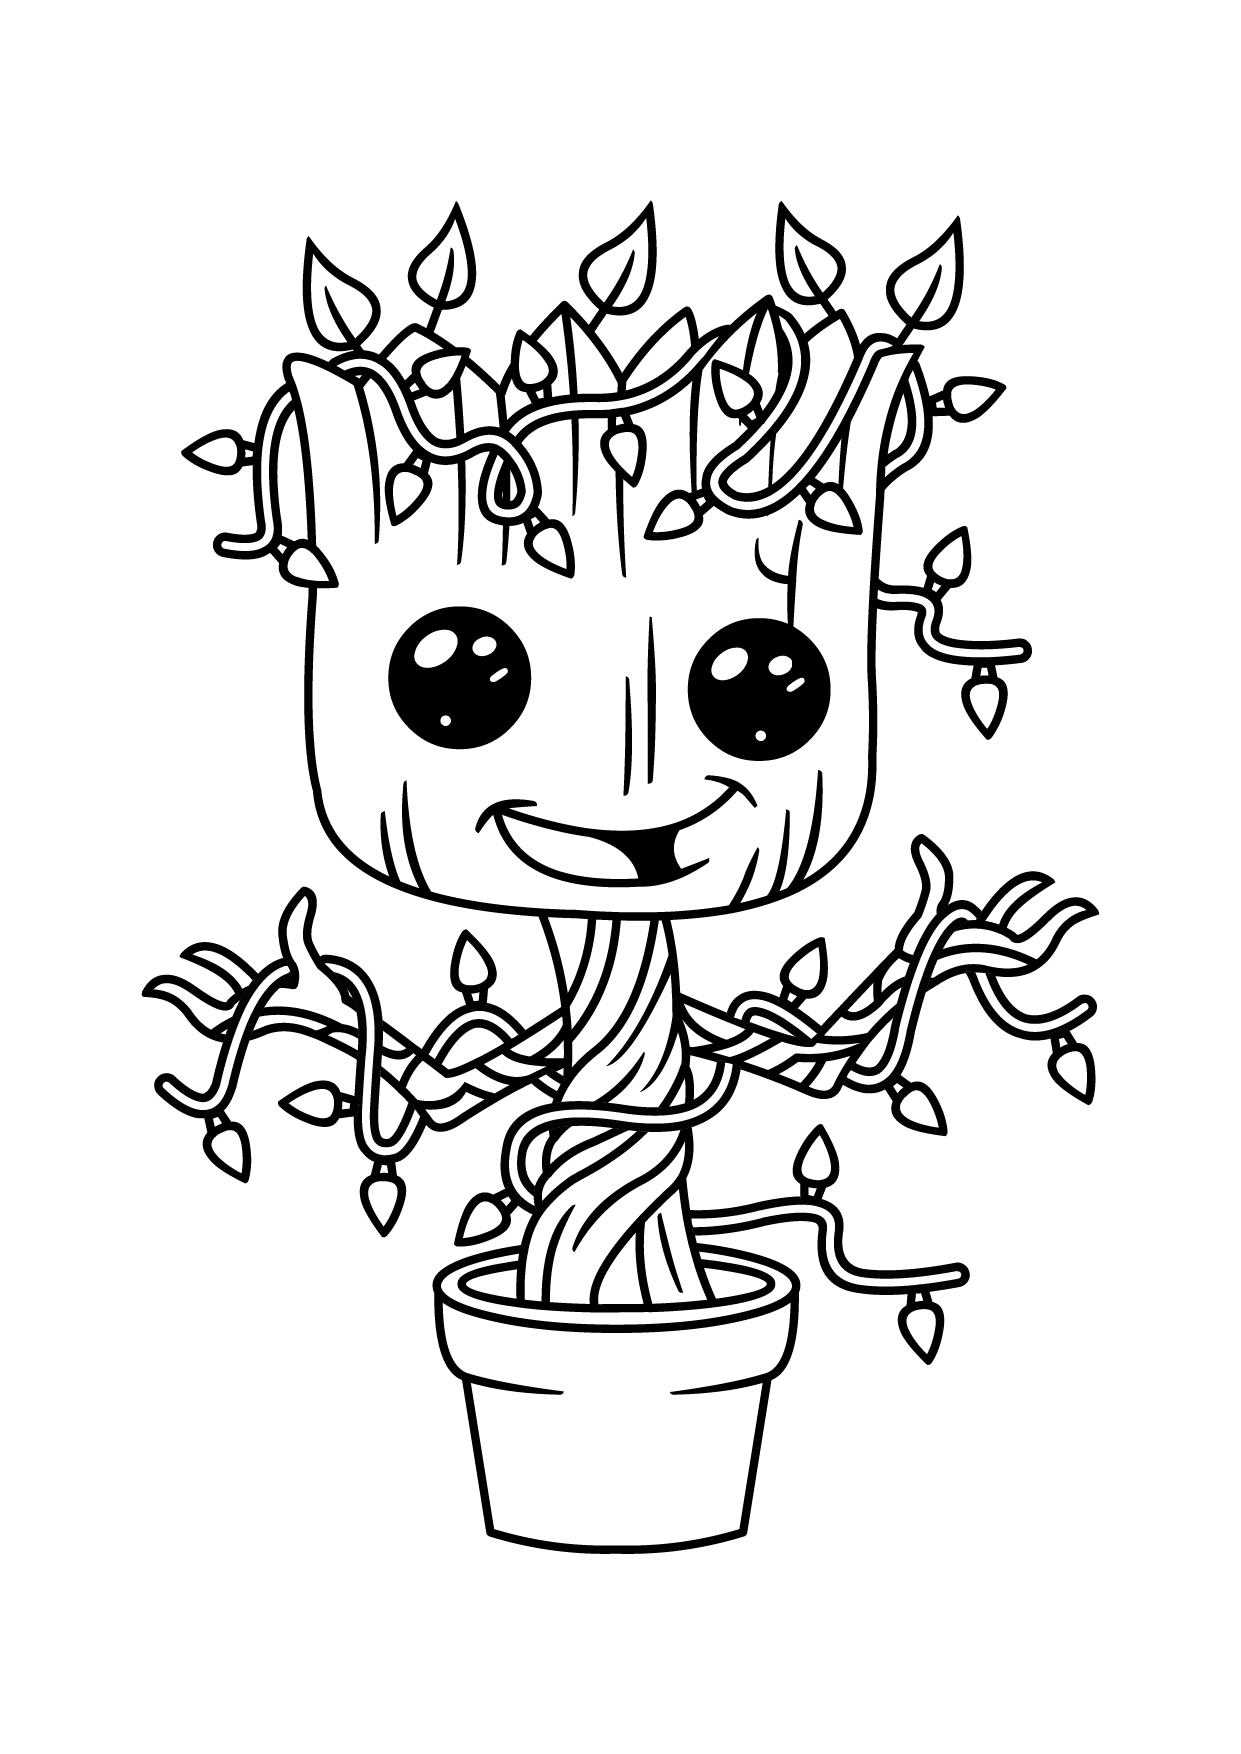 Small Groot In Flower Vase Coloring - Play Free Coloring ...